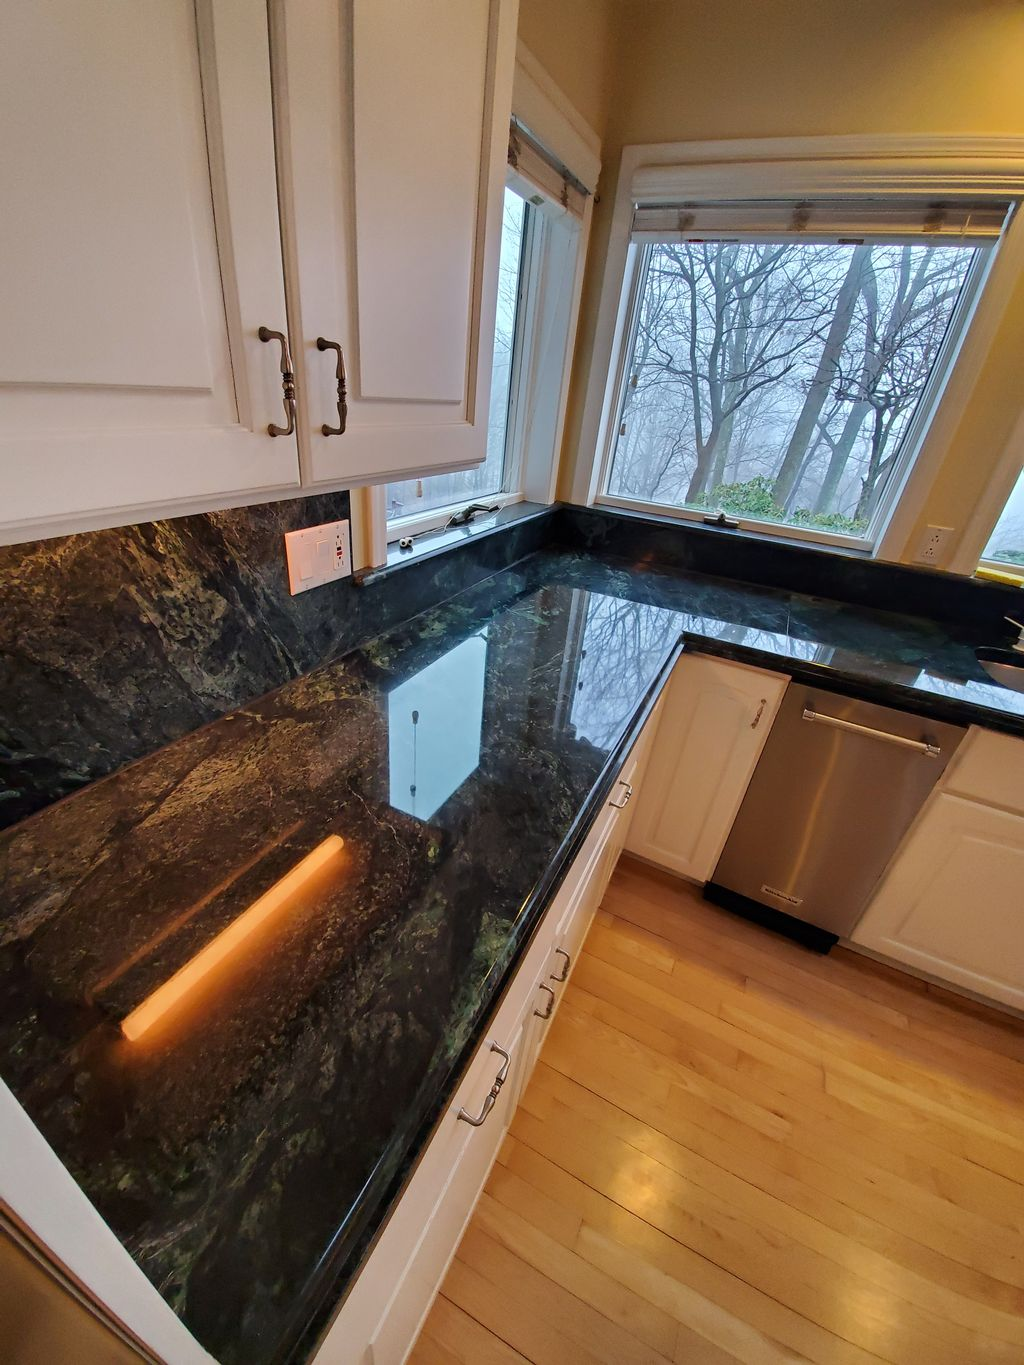 Removed Stains And Repolished and Sealed Kitchen Countertop